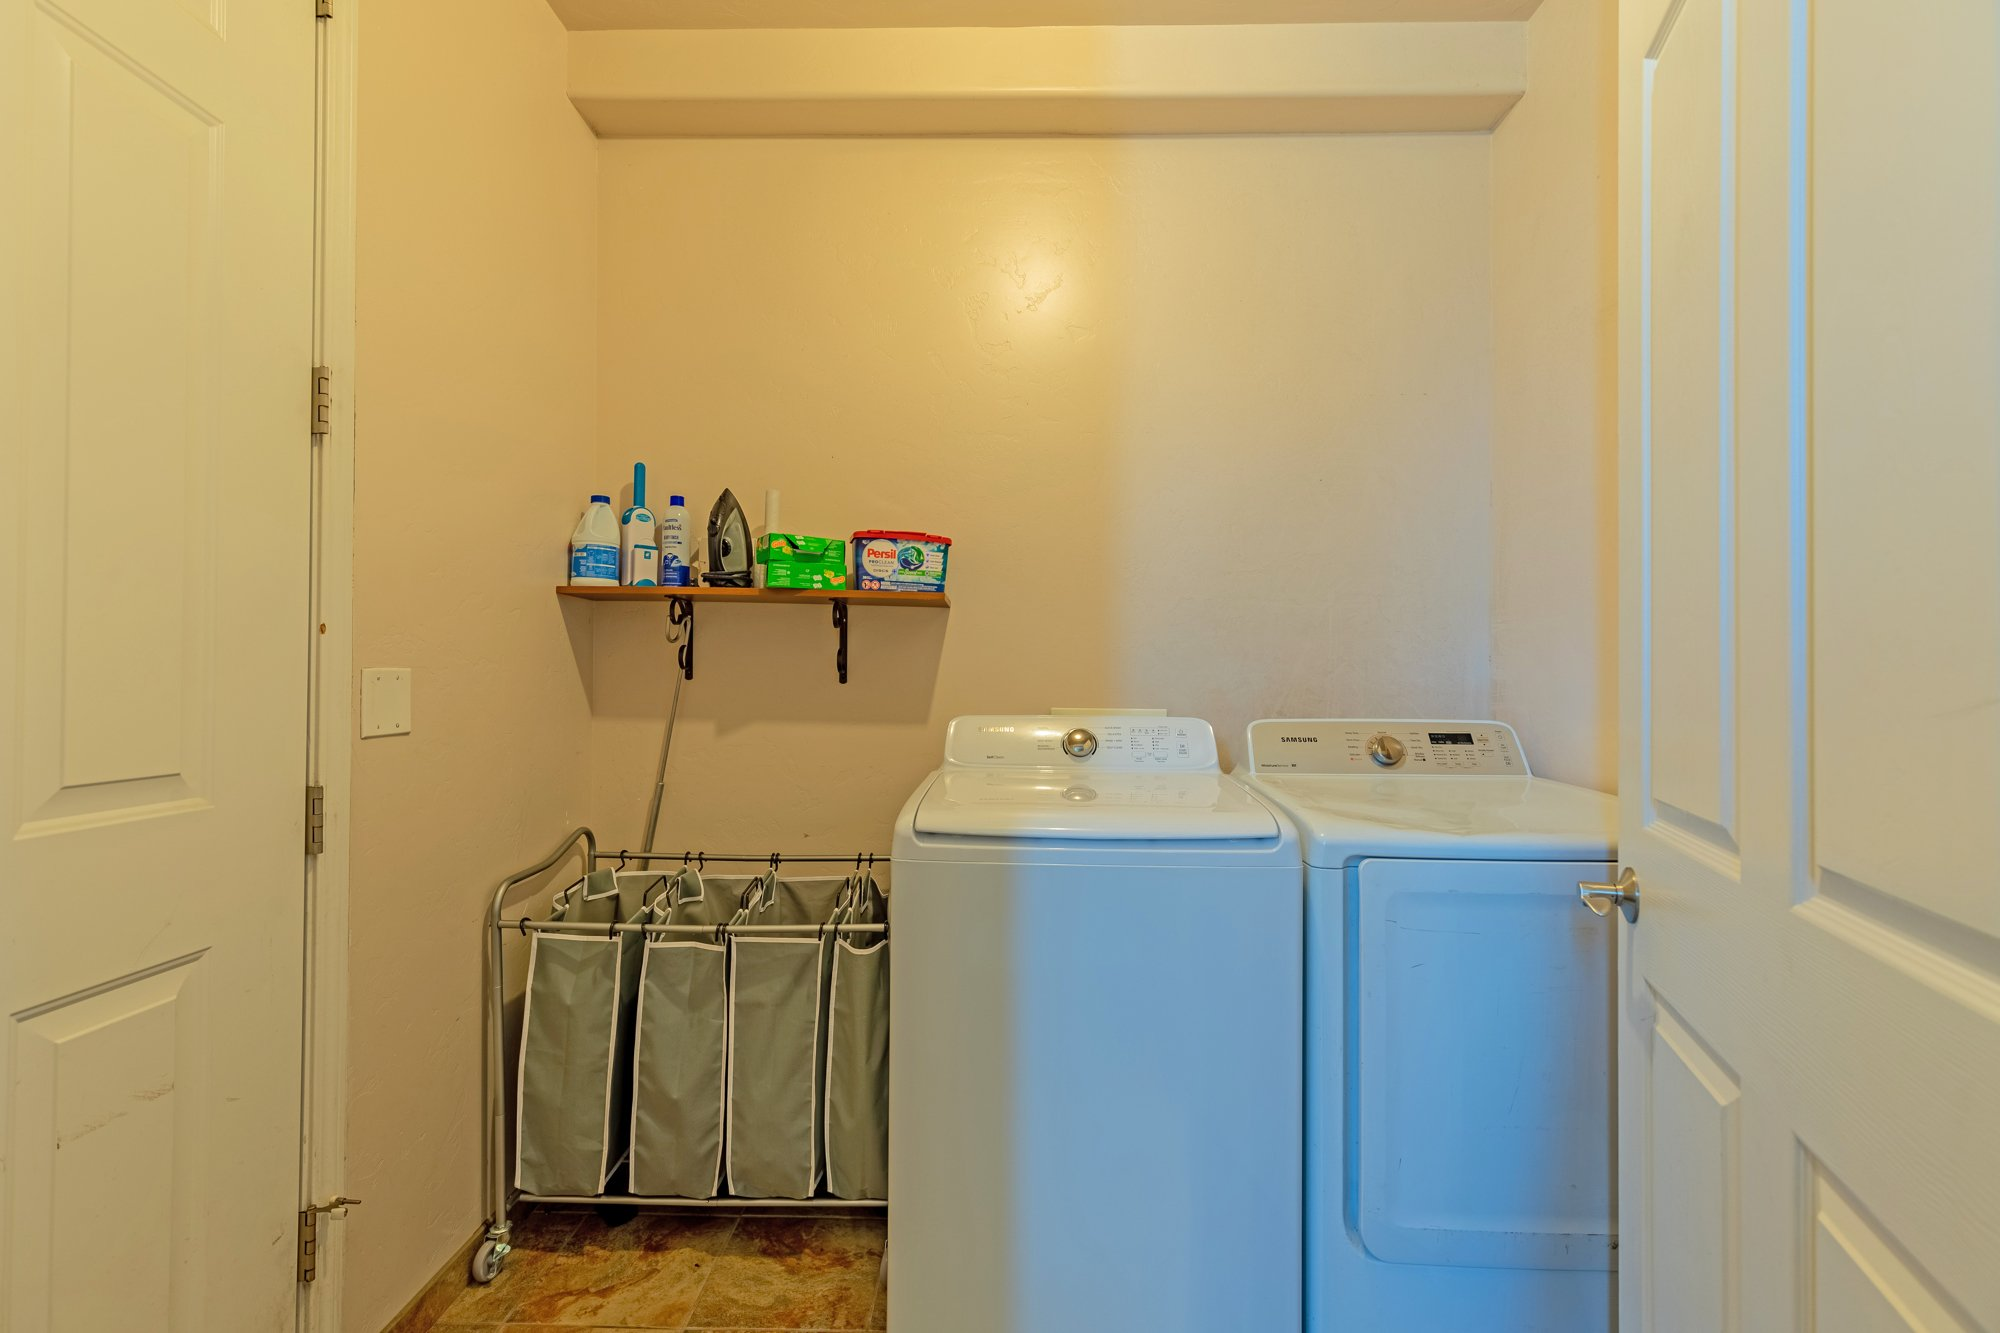 Laundry Room - 2924 Lost Creek Rd S. Montrose, CO 81401 - Atha Team Real Estate Agents